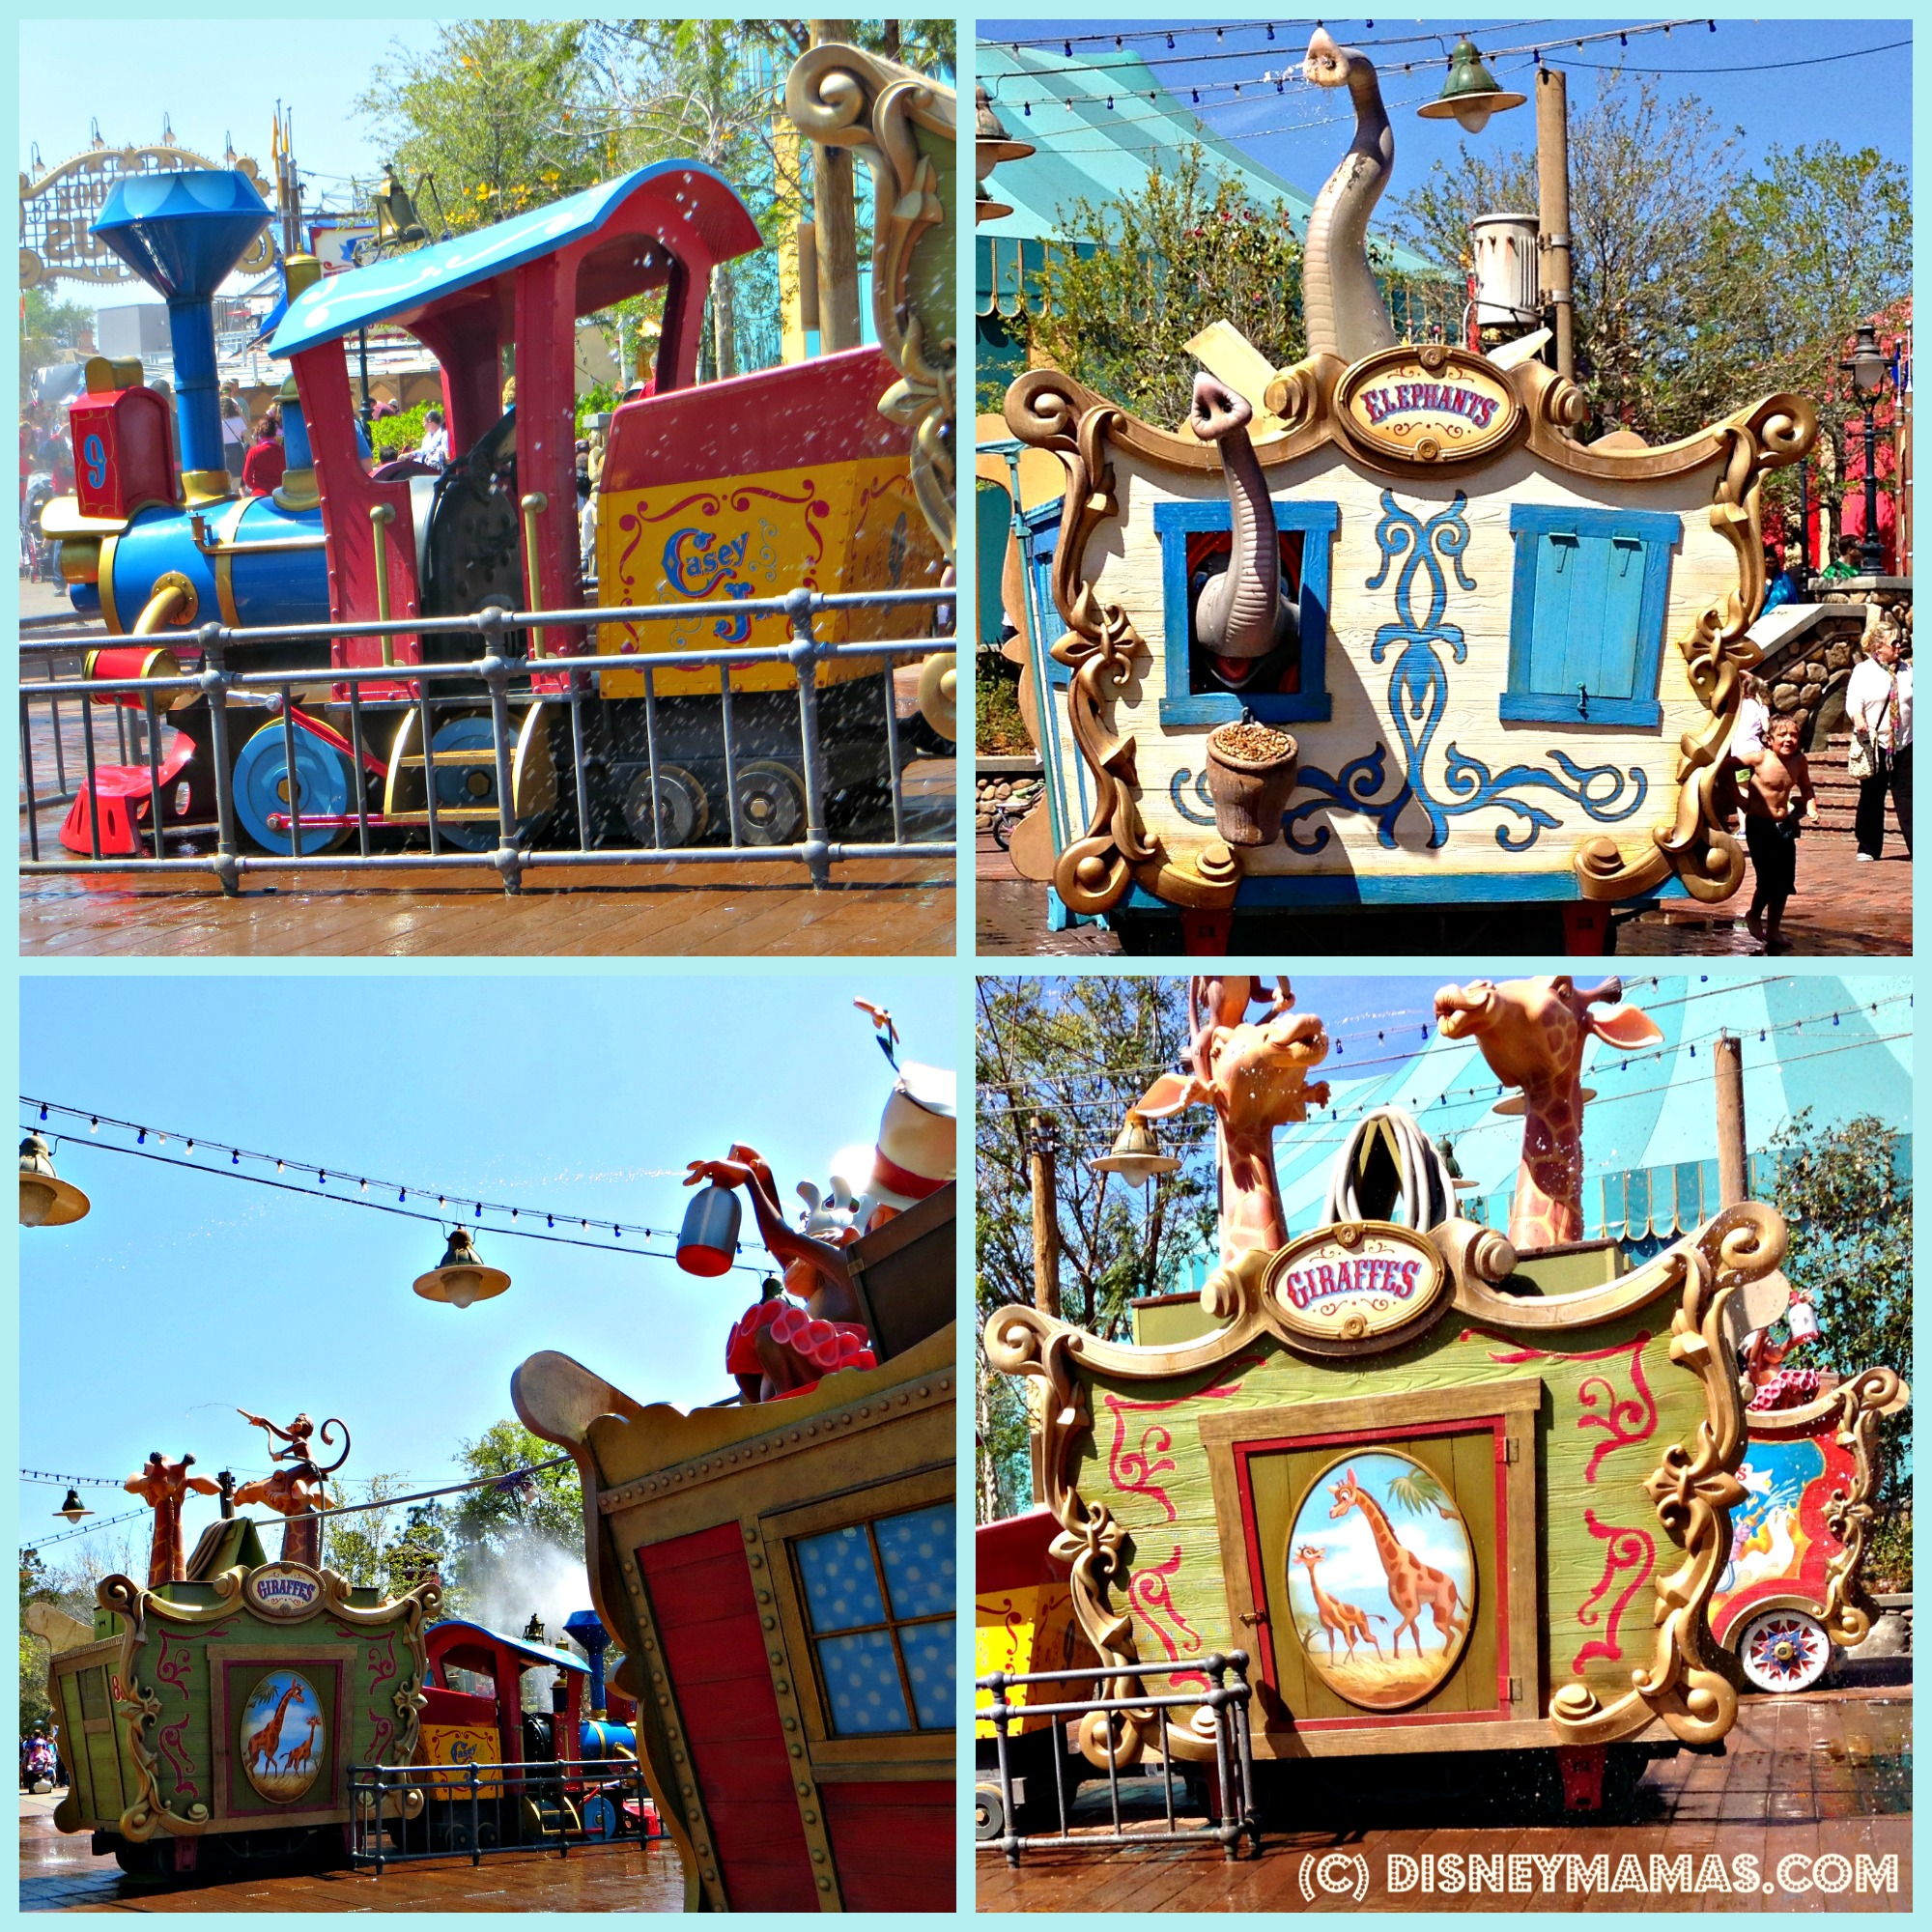 The Casey Jr. Splash 'N' Soak Station at Walt Disney World features whimsical circus animals ready to play!